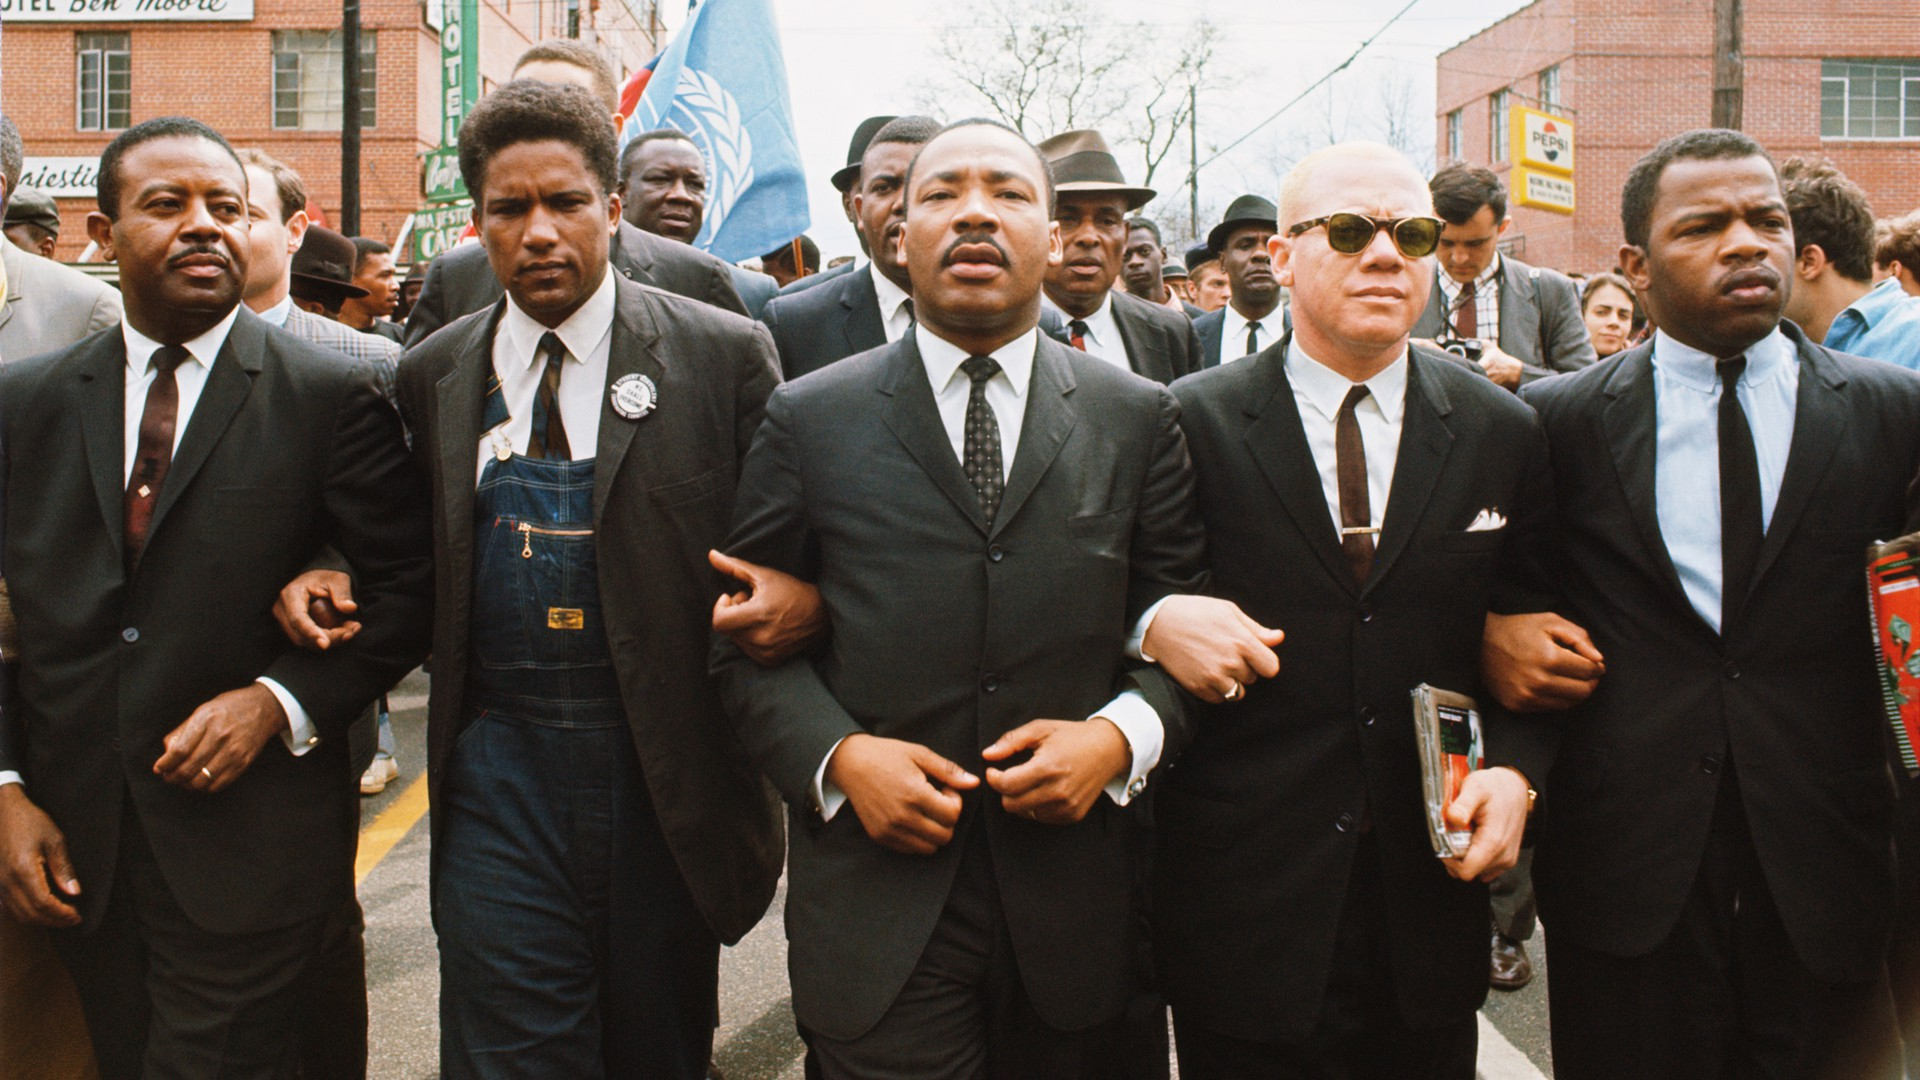 John Lewis: King Inspired Me to Get in Trouble - The Atlantic